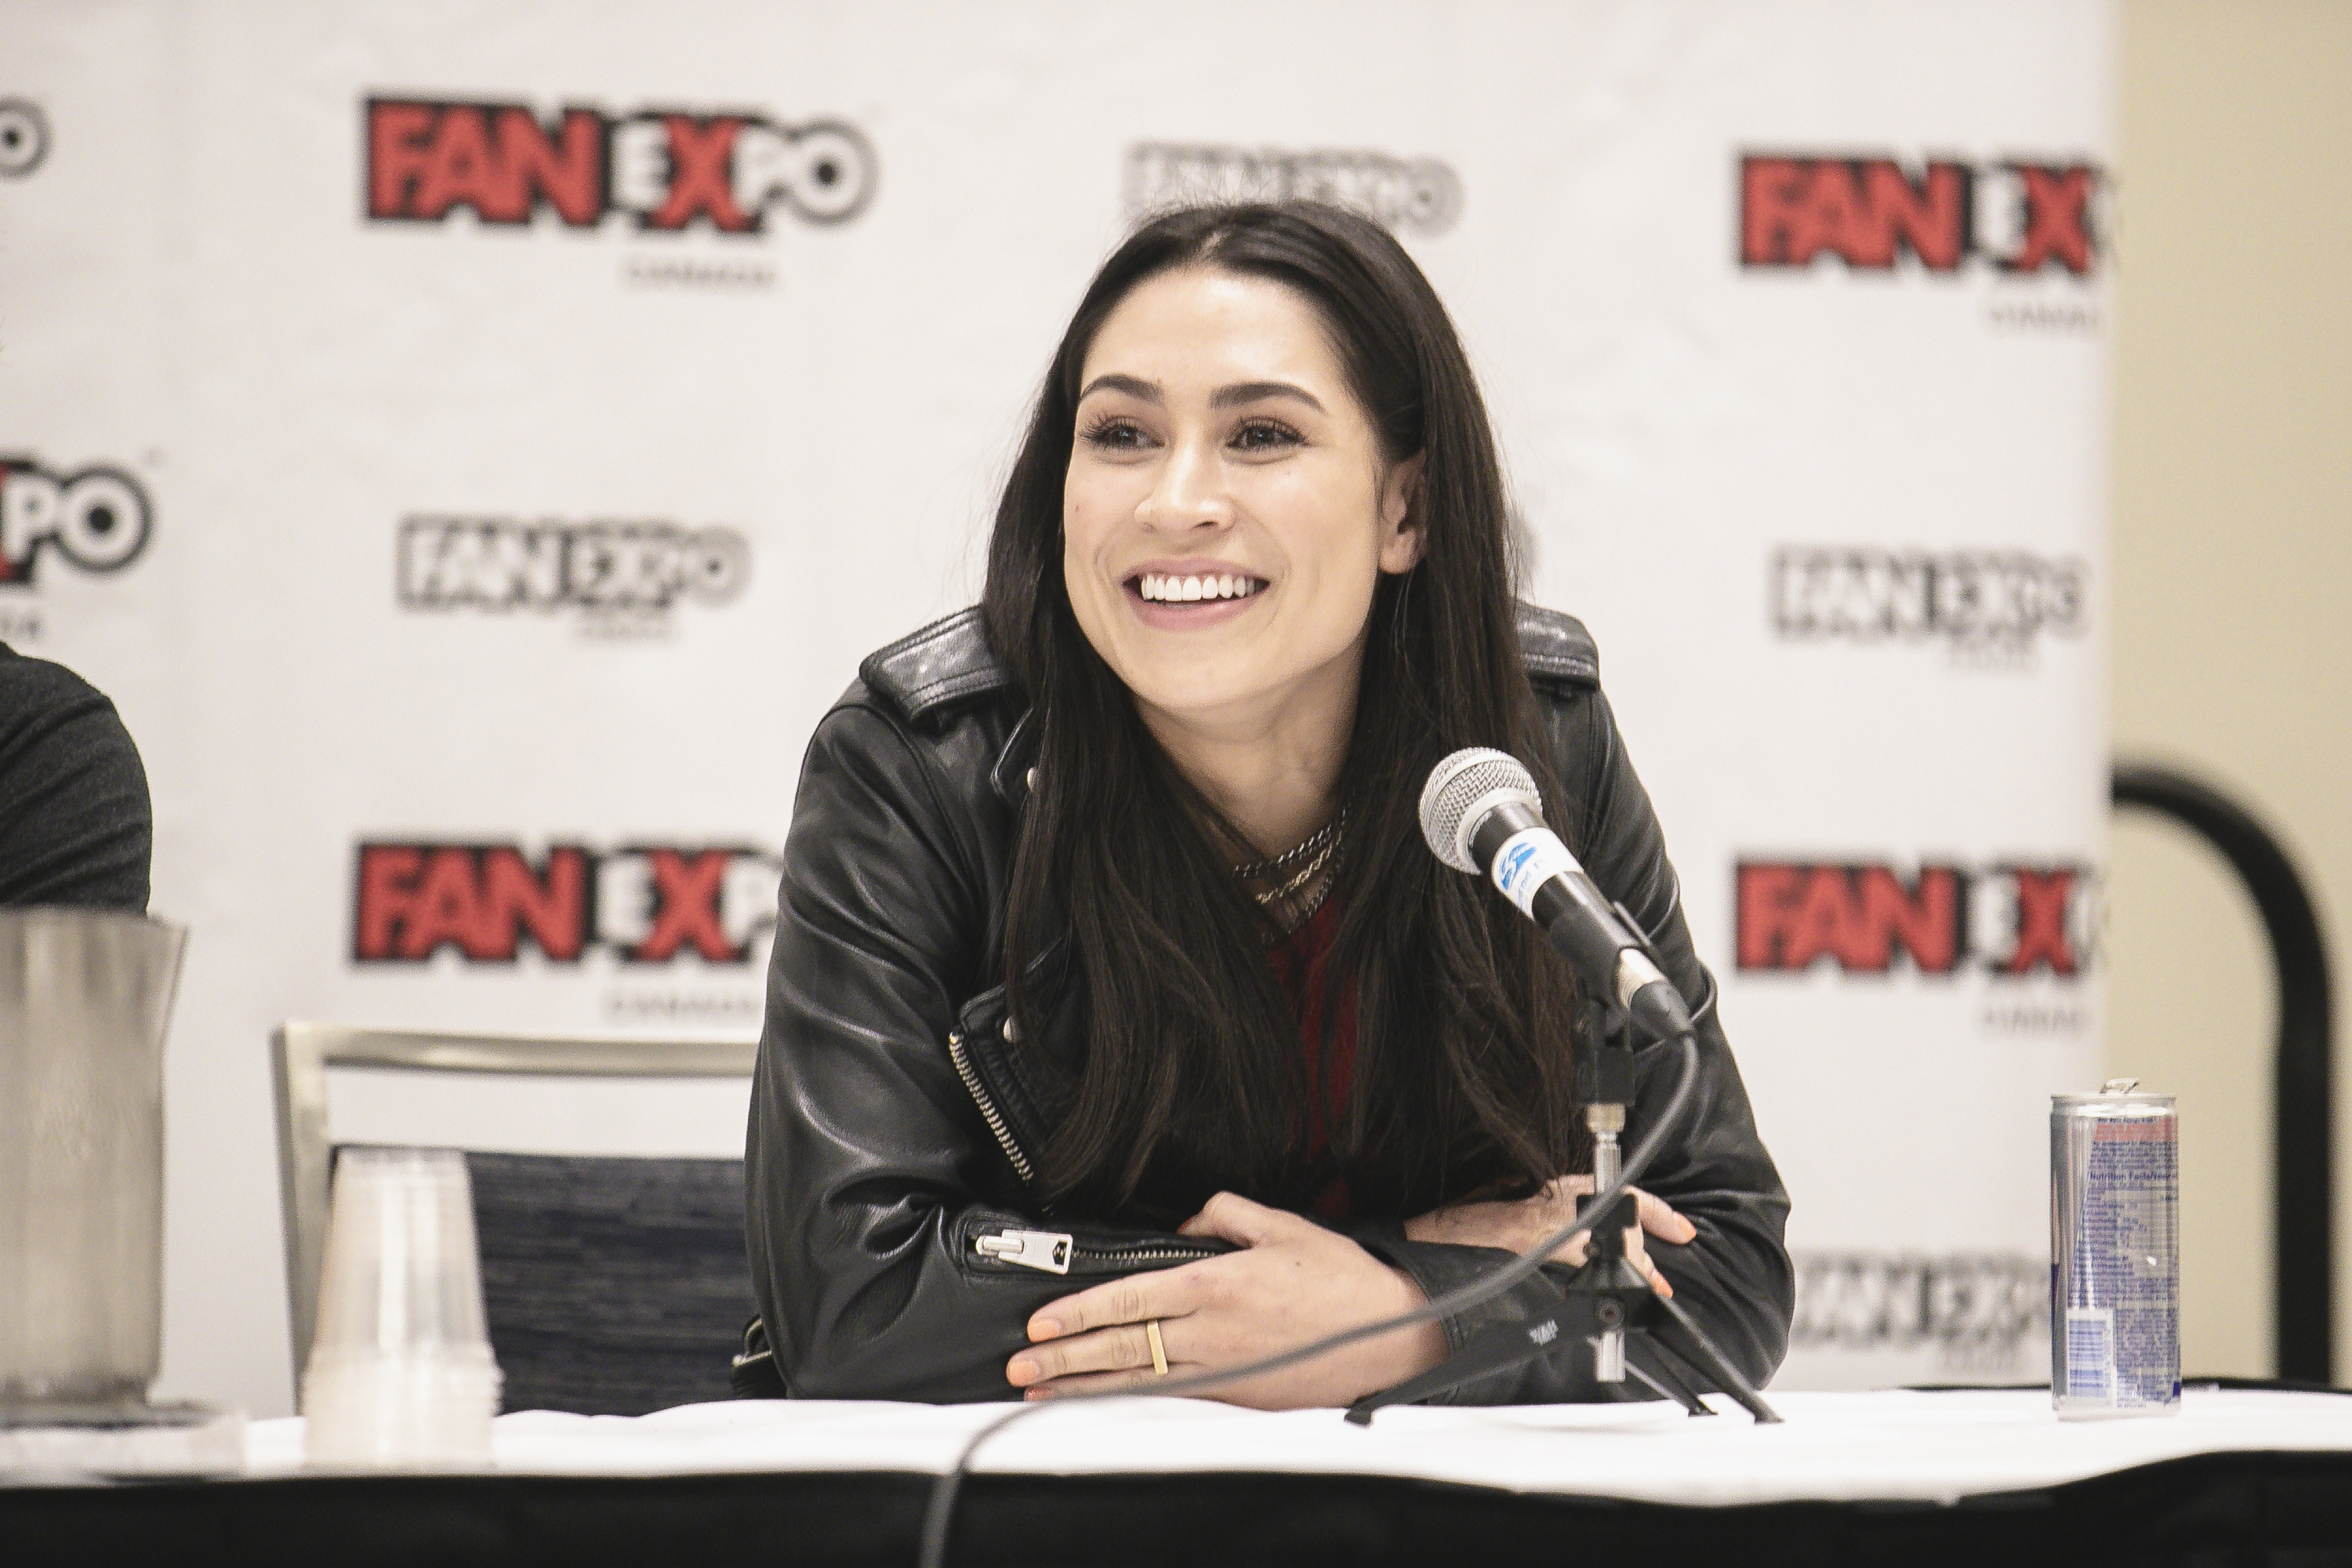 Cassie Steele speaks at a panel event